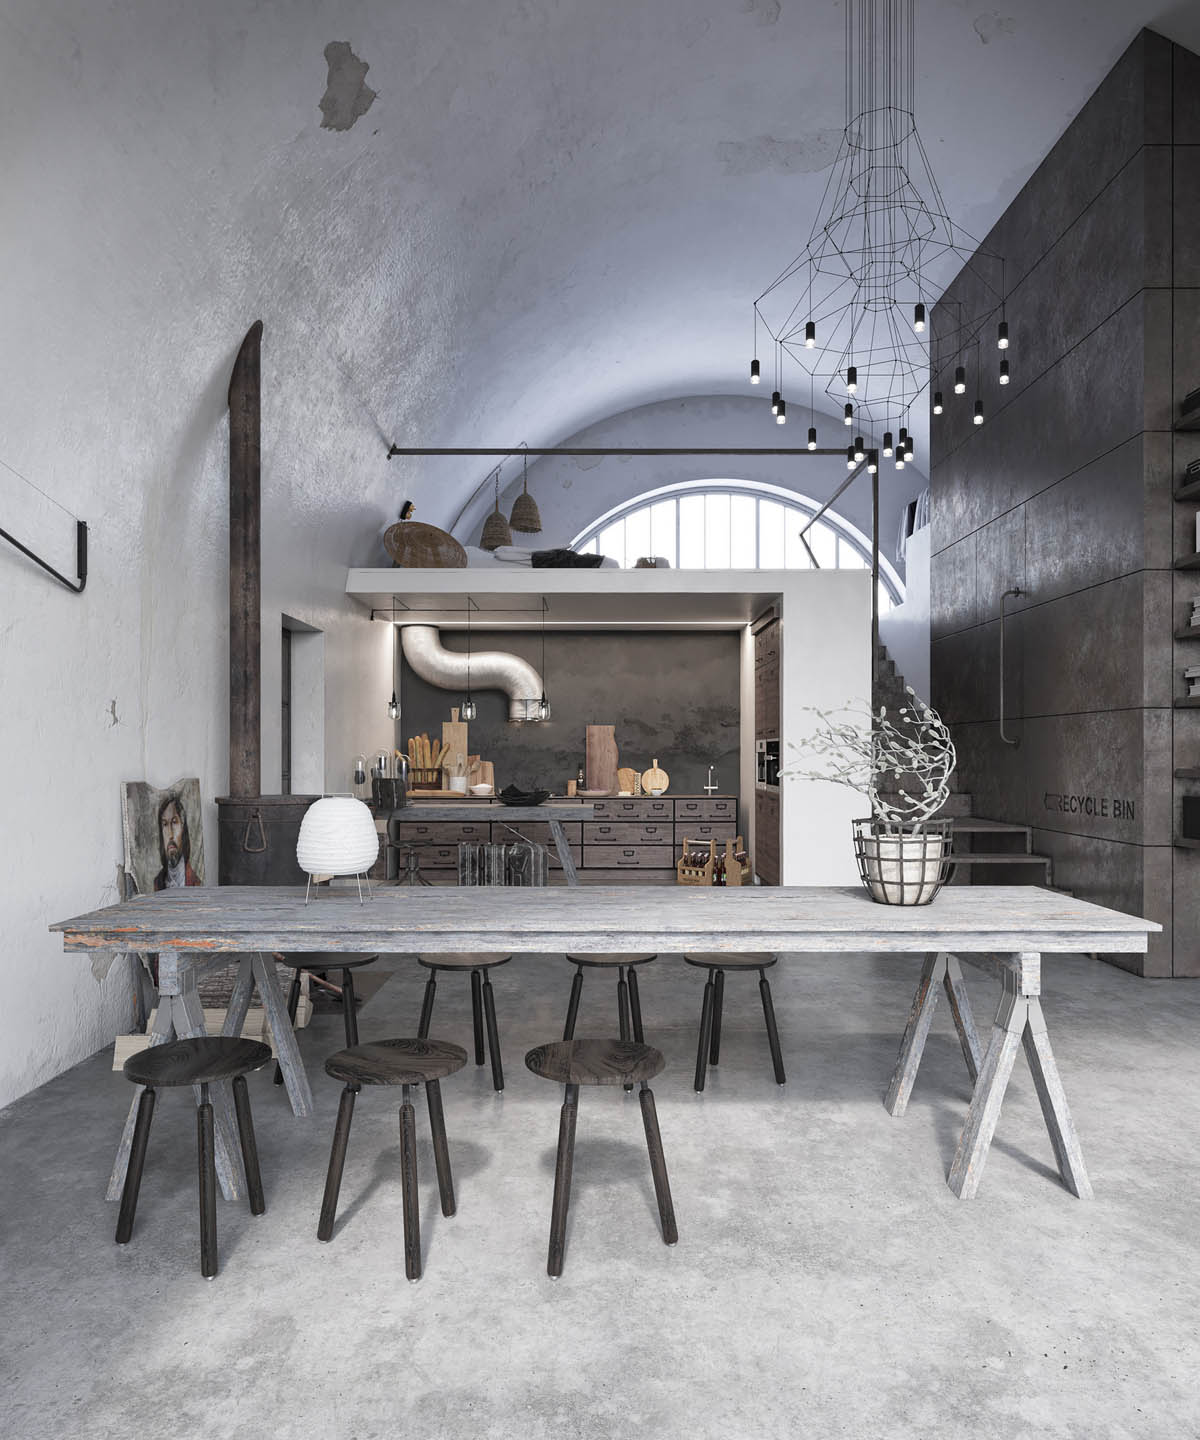 Two Examples Of Industrial Modern Rustic Interior Design images 5